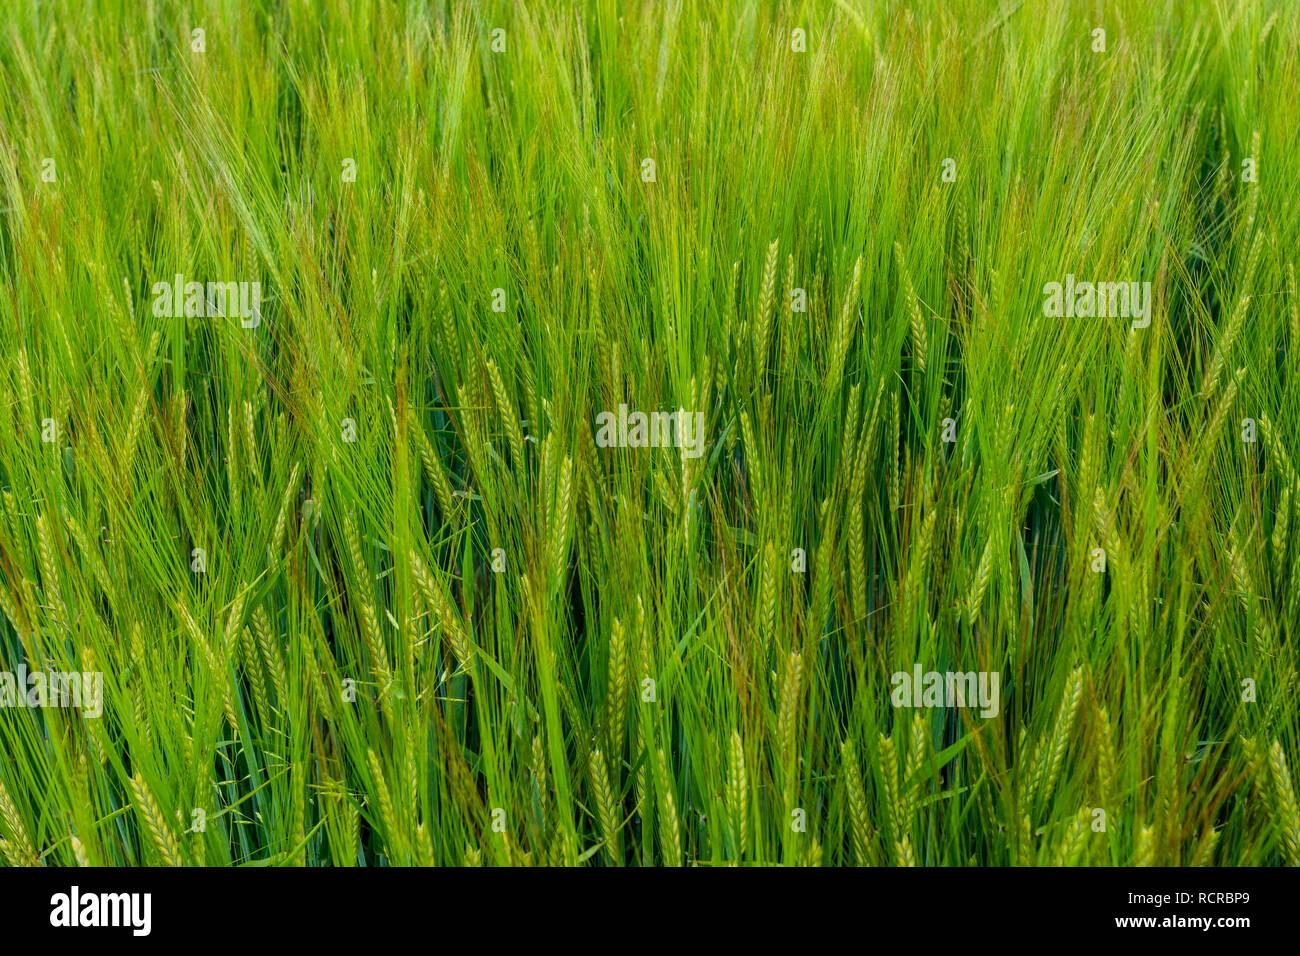 A field of young light green long eared corn. - Stock Image